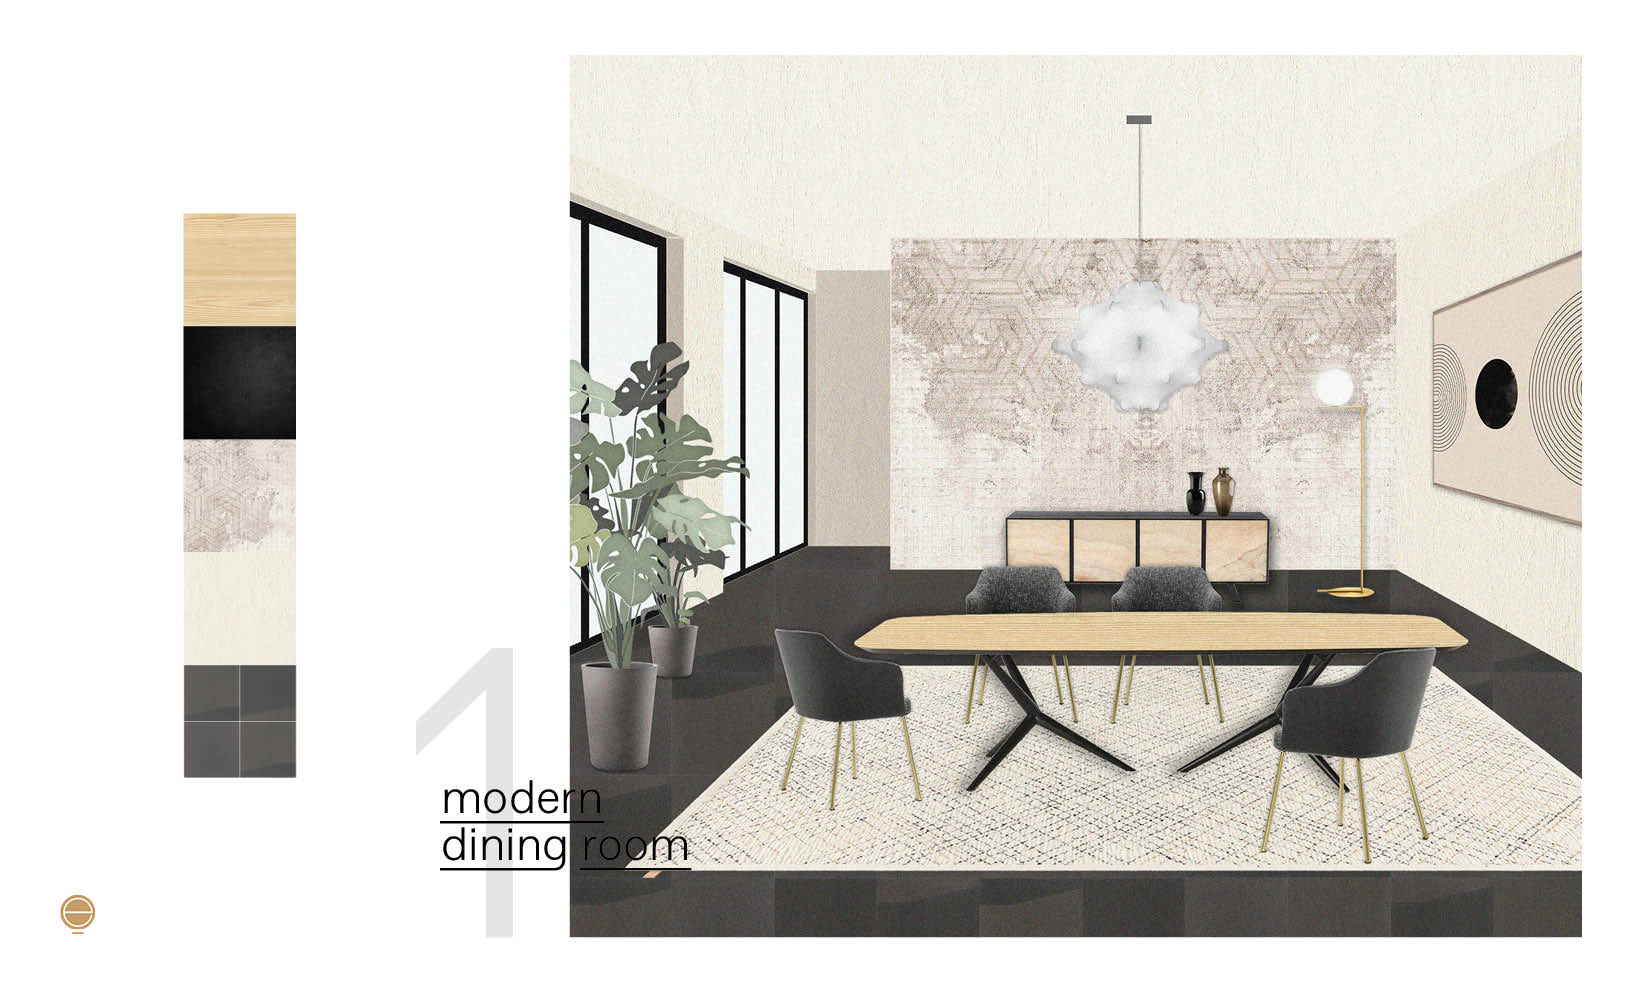 contemporary Italian dining room set composition with contrast colors